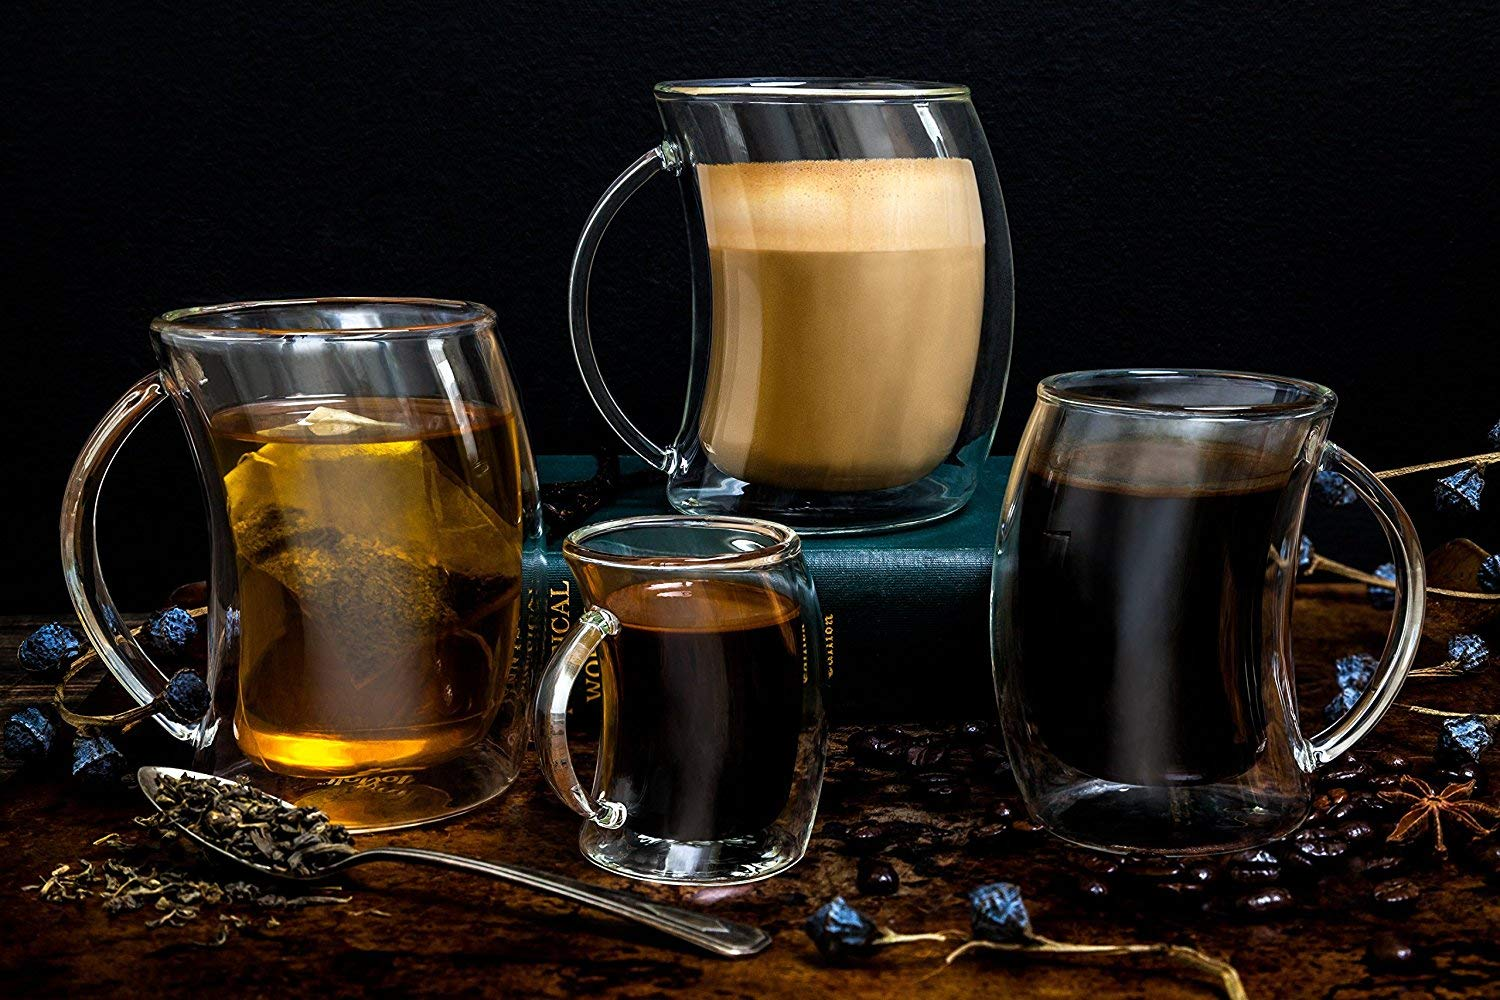 10 oz, 300ml JoyJolt Caleo Collection Glass Coffee Cups Double Wall Insulated Mugs Set of 2 Glasses